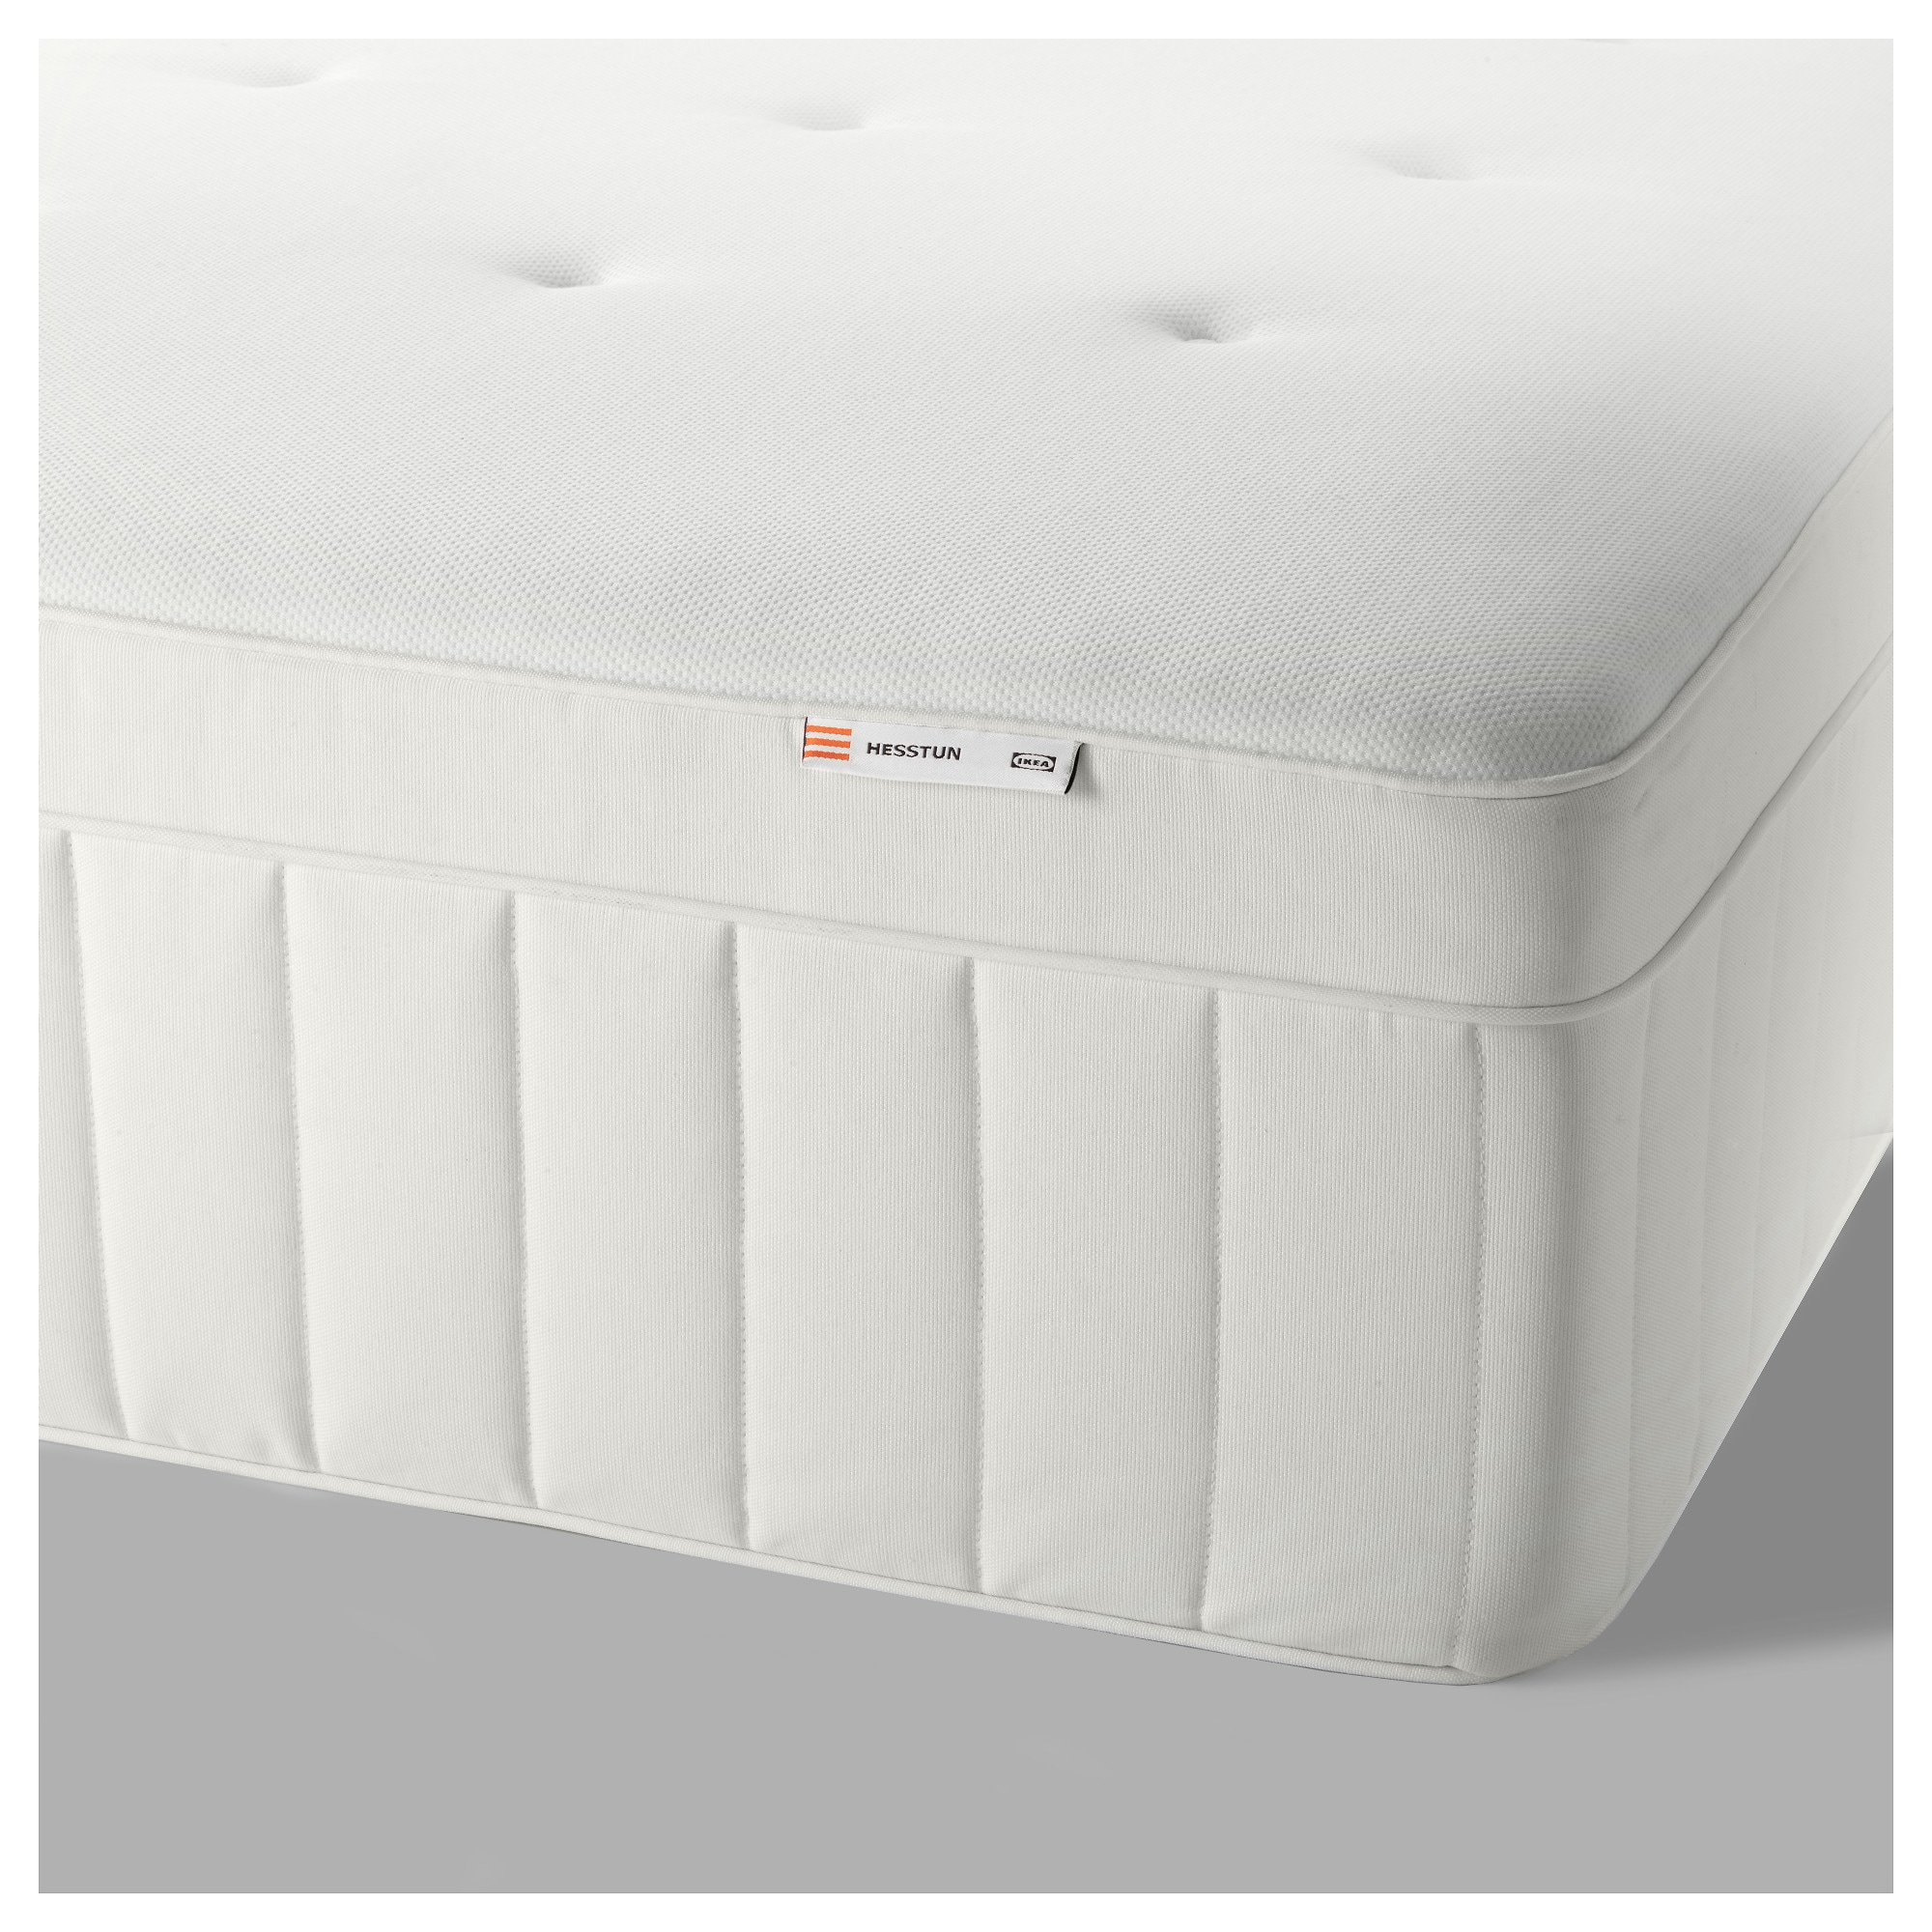 reviews for sleepopolis an complete review read you mattress right analysis ikea mattresses is our